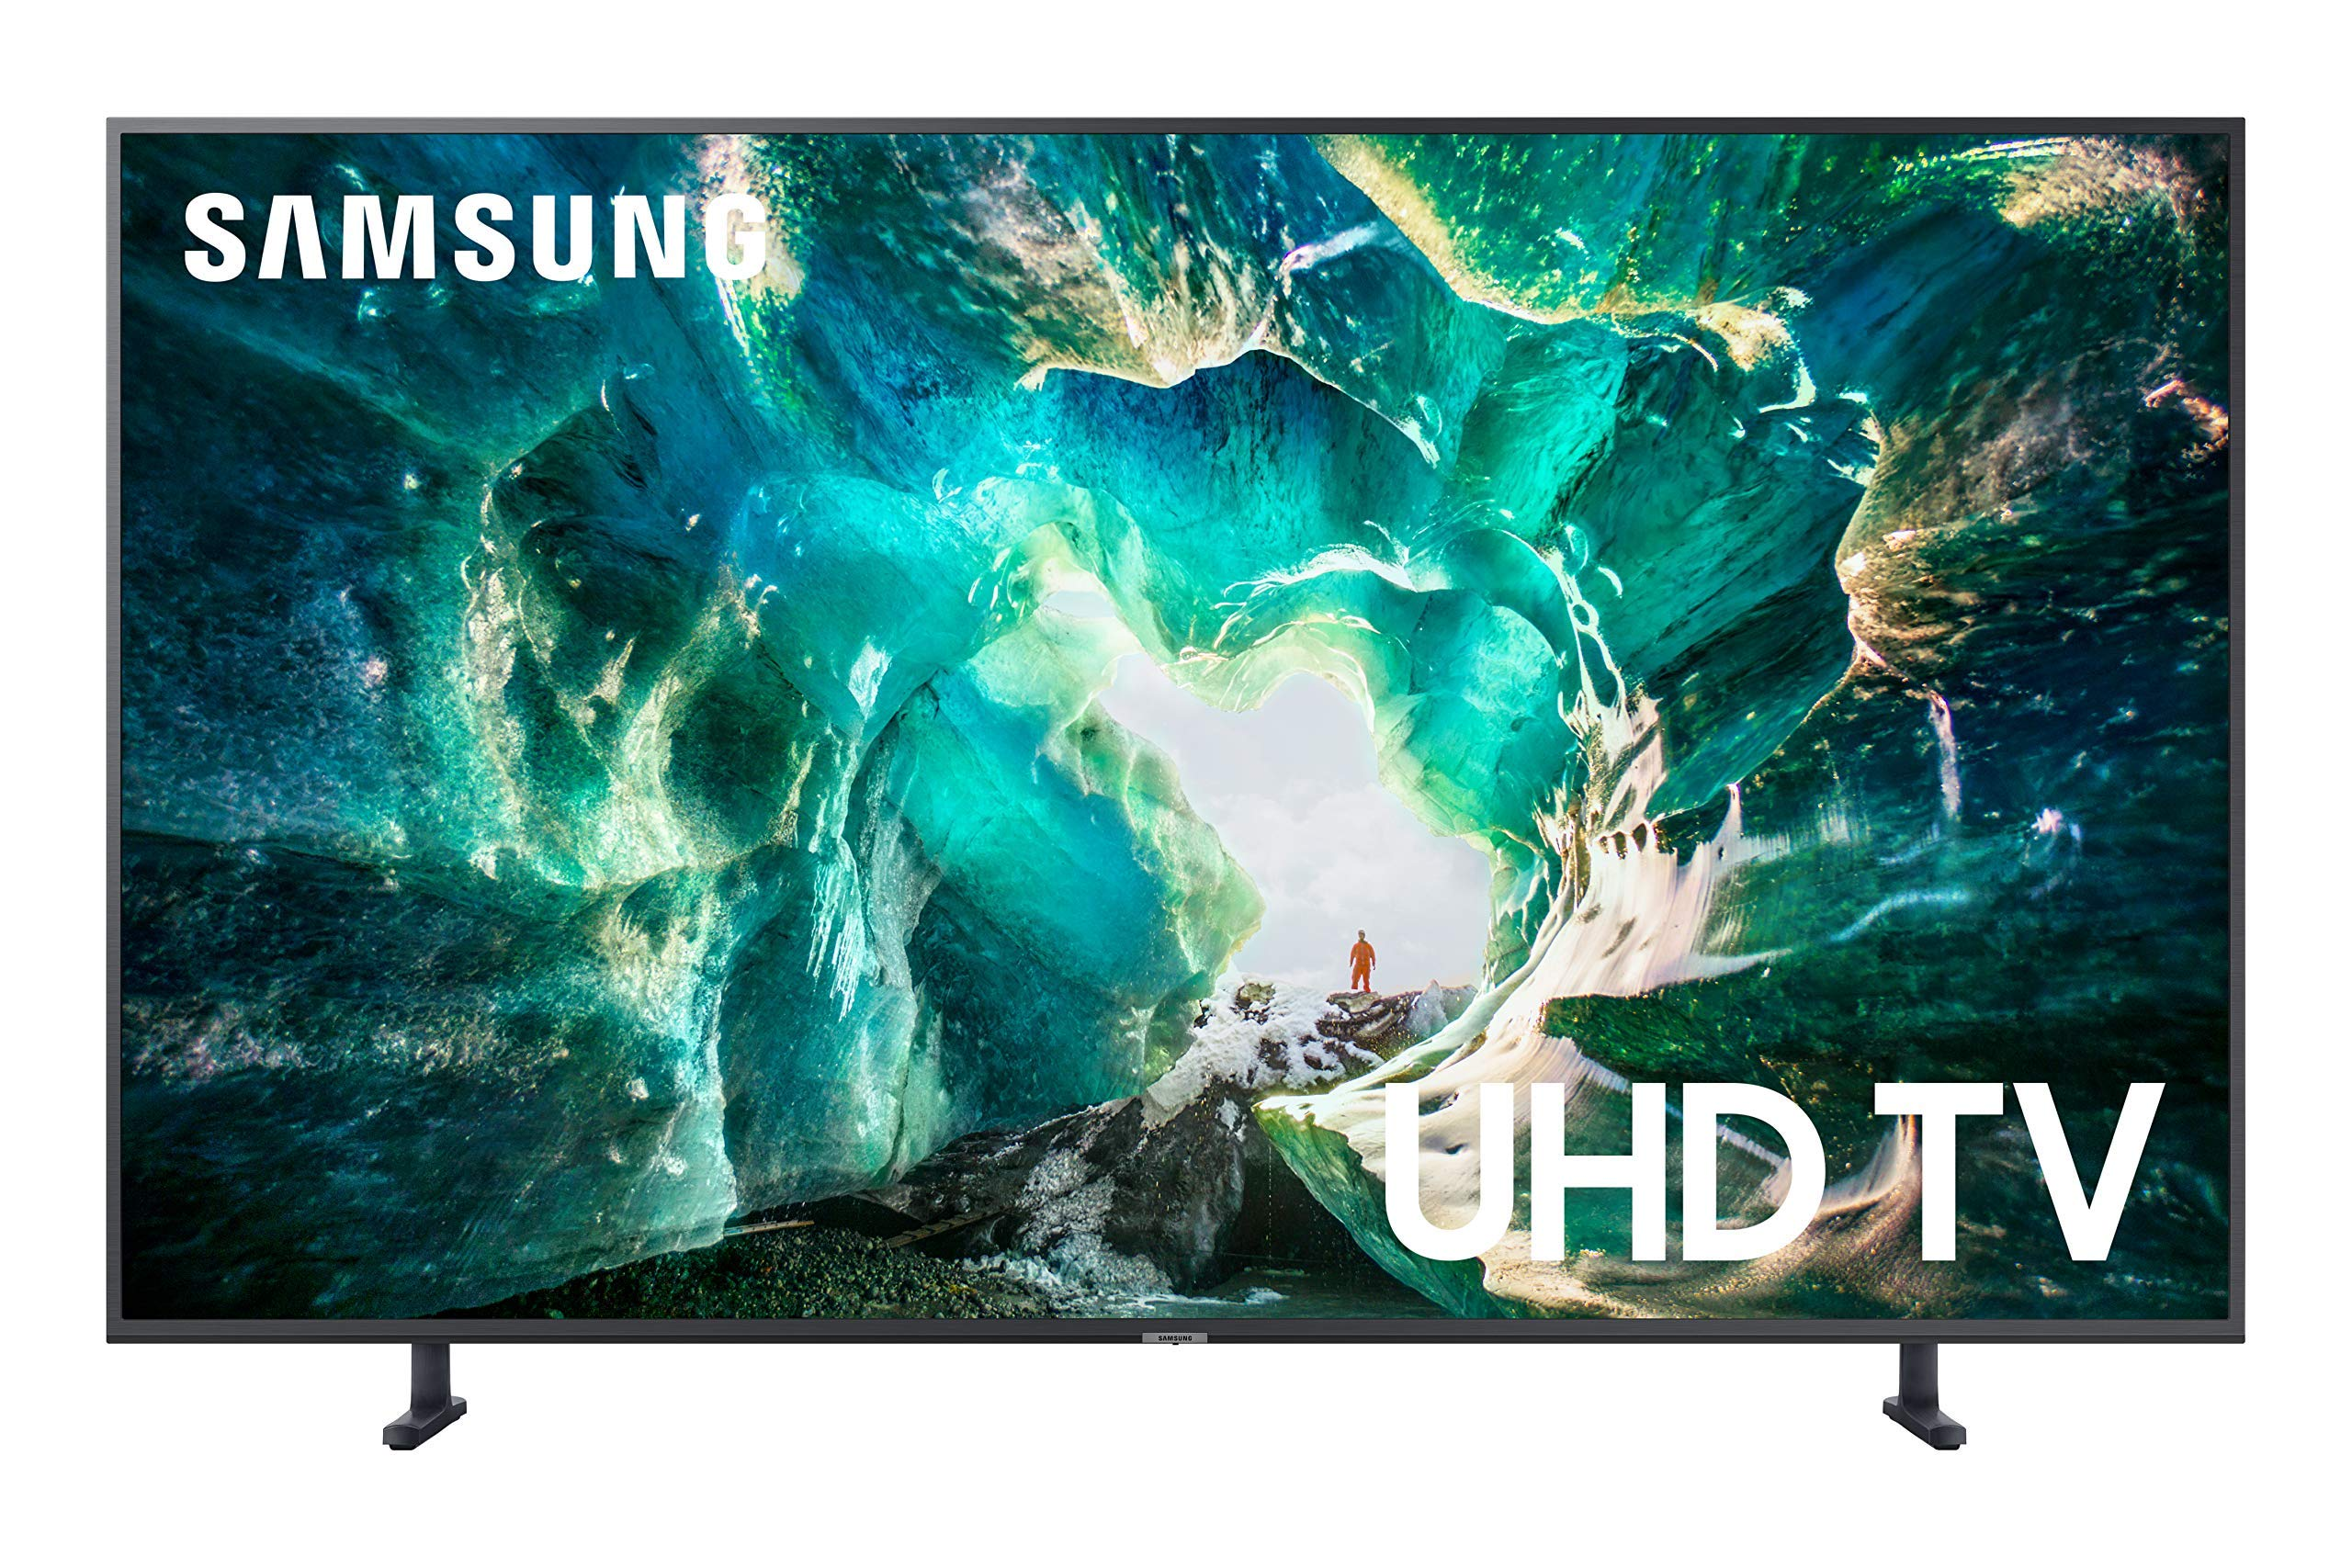 Samsung UN49RU8000 49'' (3840 x 2160) Smart 4K Ultra High Definition TV (2019) - (Renewed) by Samsung